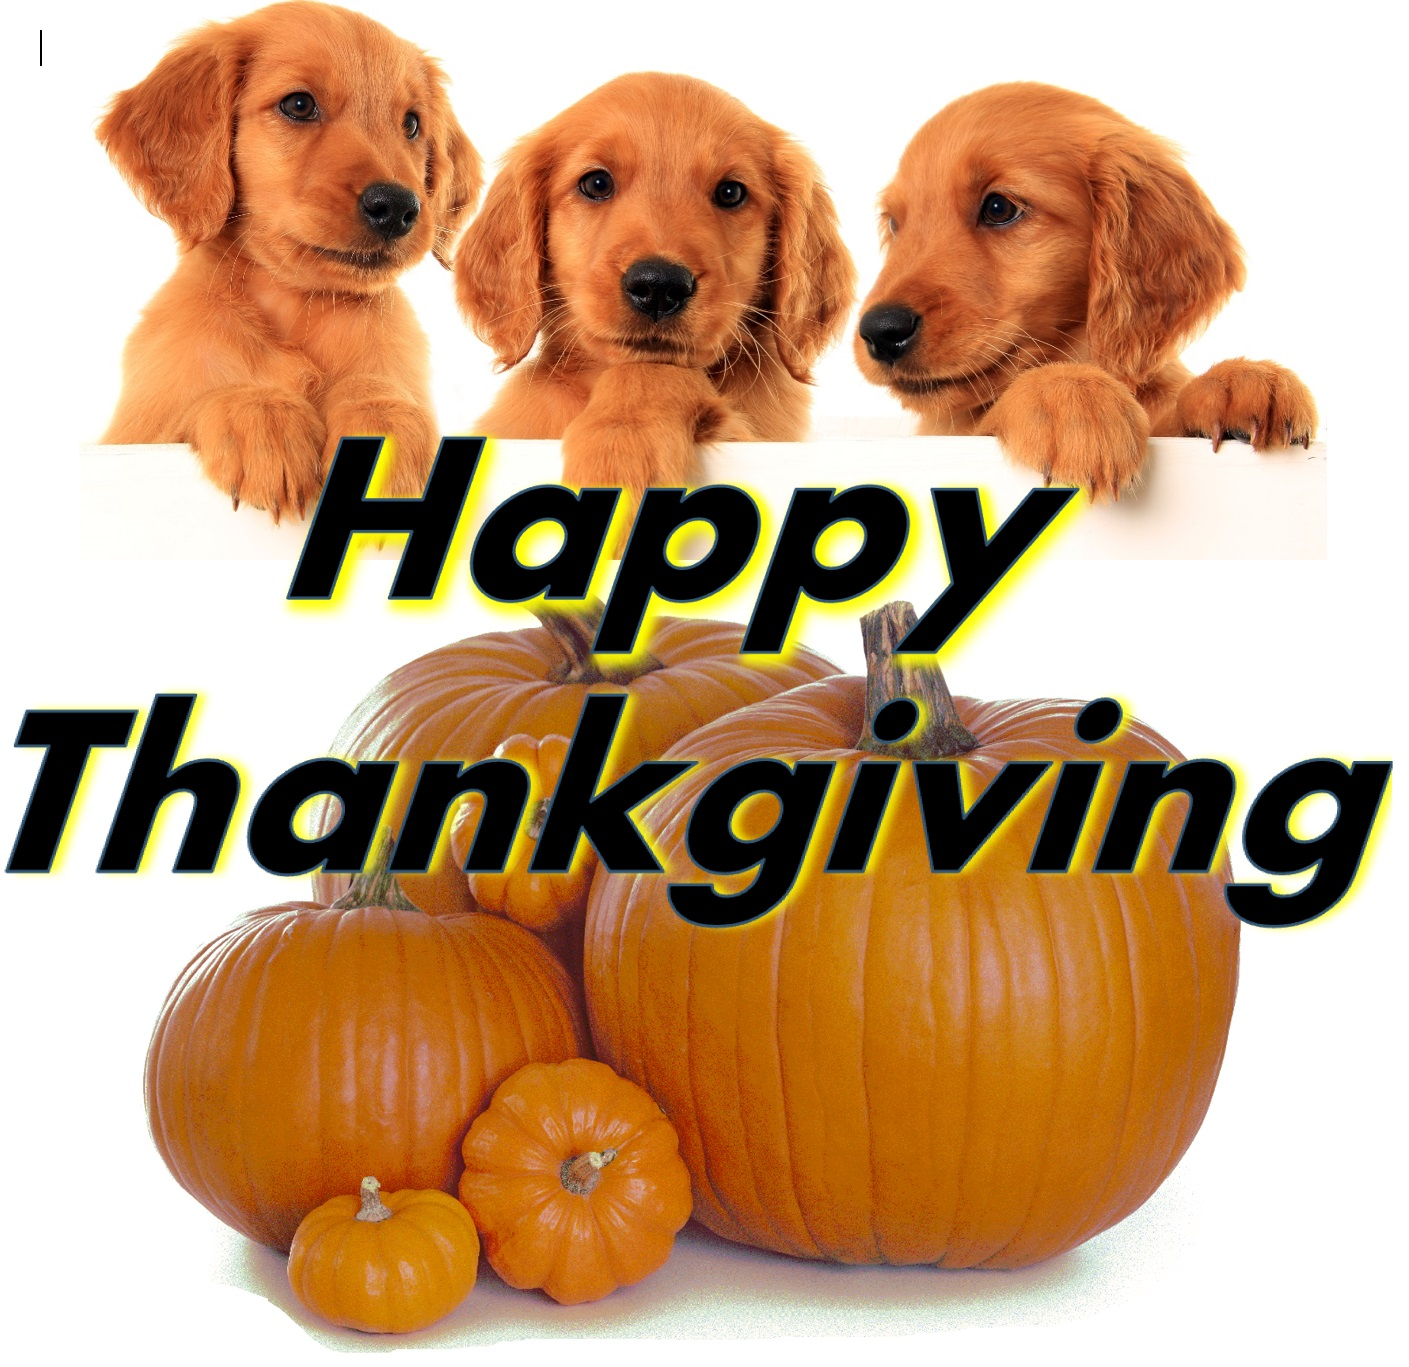 Happty Thanksgiving with for golden retreiver puppies.